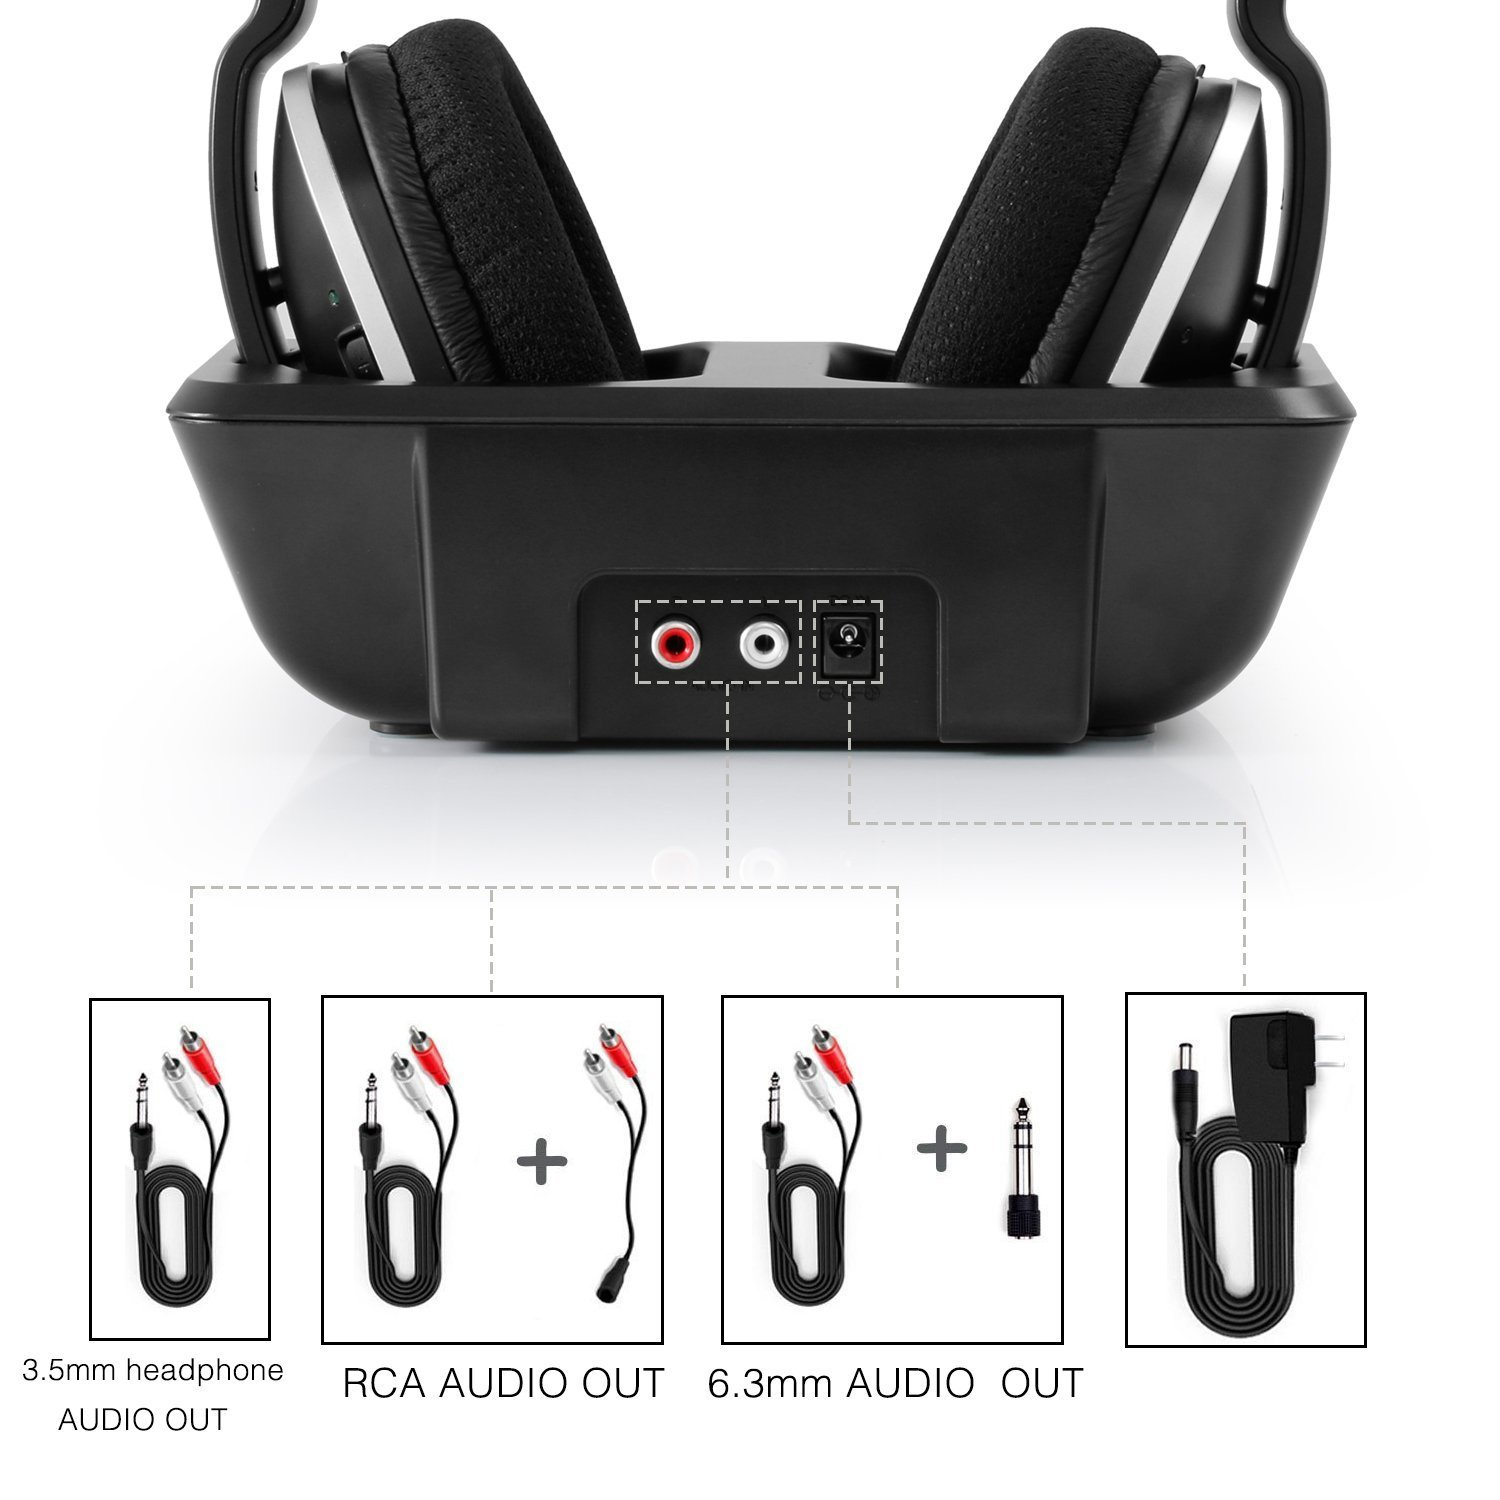 Wireless TV Headphones Over Ear Headsets - Digital Stereo Headsets with 2.4GHz RF Transmitter, Charging Dock, 100ft Wireless Range and Rechargeable 20 Hour Battery, Black by ARTISTE (Image #7)